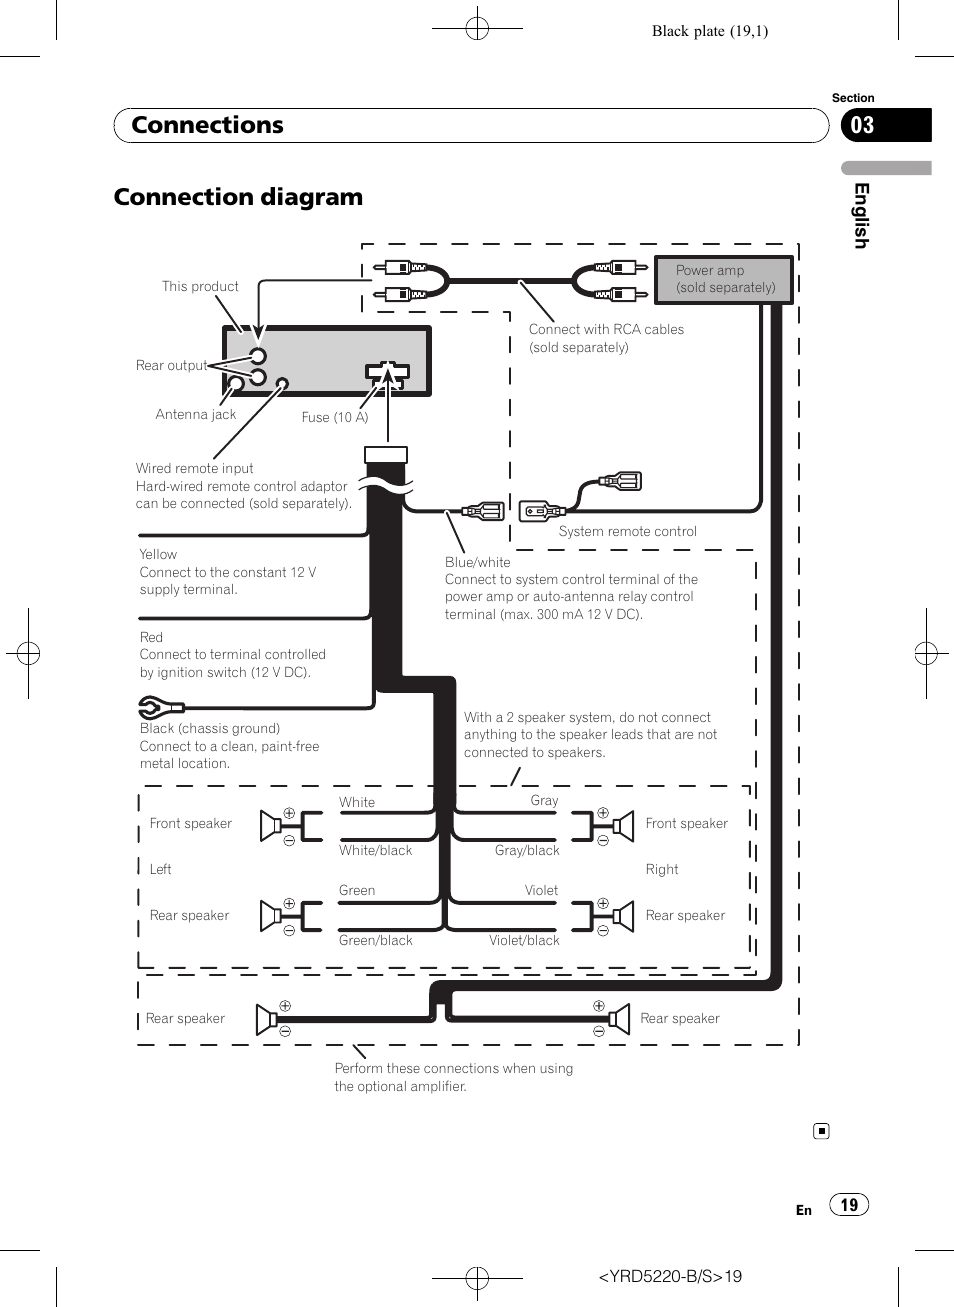 connection diagram, connections pioneer super tuner iii d deh pioneer super tuner iii d mosfet 50wx4 wiring diagram connection diagram, connections pioneer super tuner iii d deh 2150ub user manual page 19 128